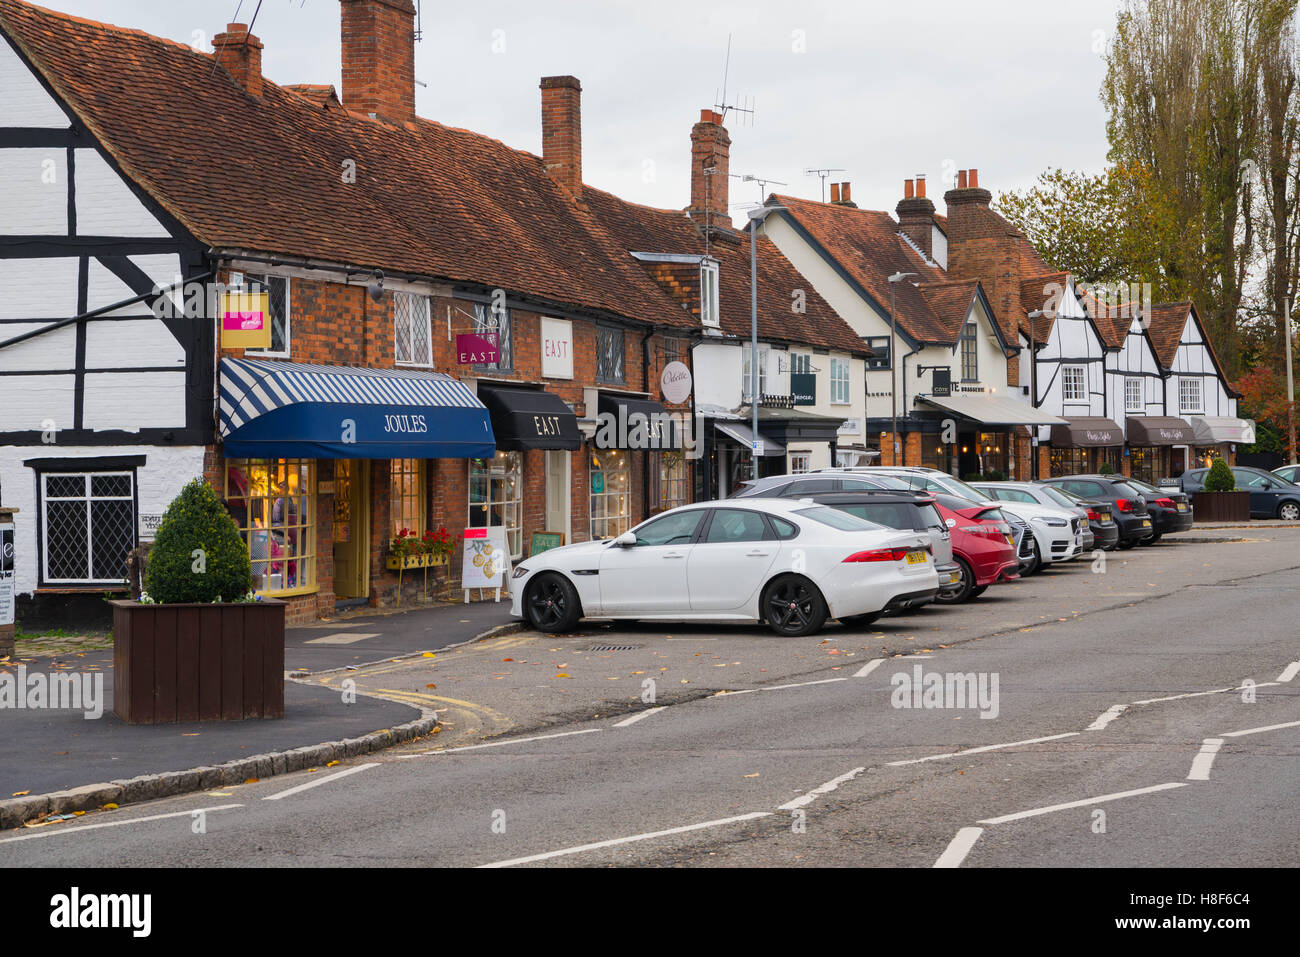 View of the High Street in Old Amersham, Buckinghamshire, England. November 2016 - Stock Image